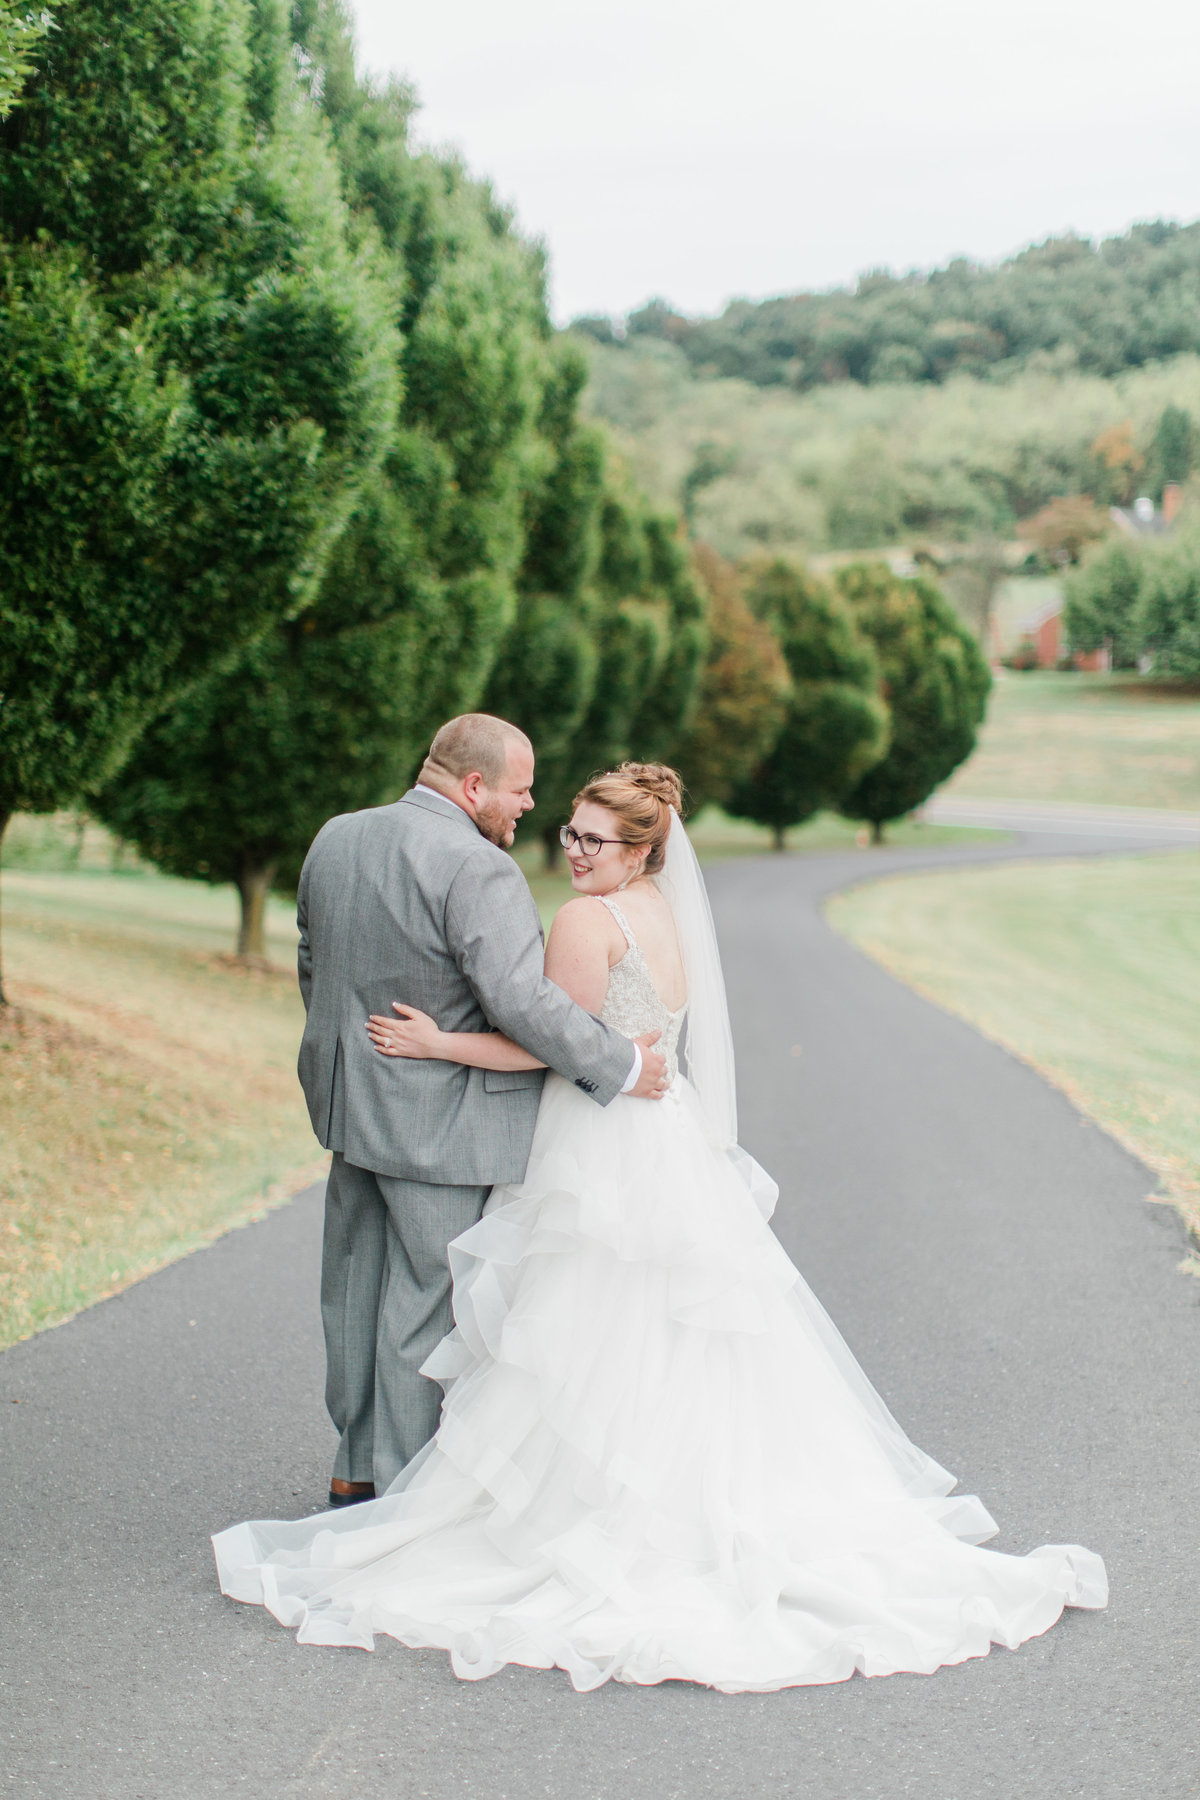 Bluestone_Vineyard_Fall_Wedding_Virginia_DC_Photographer_Angelika_Johns_Photography-4617